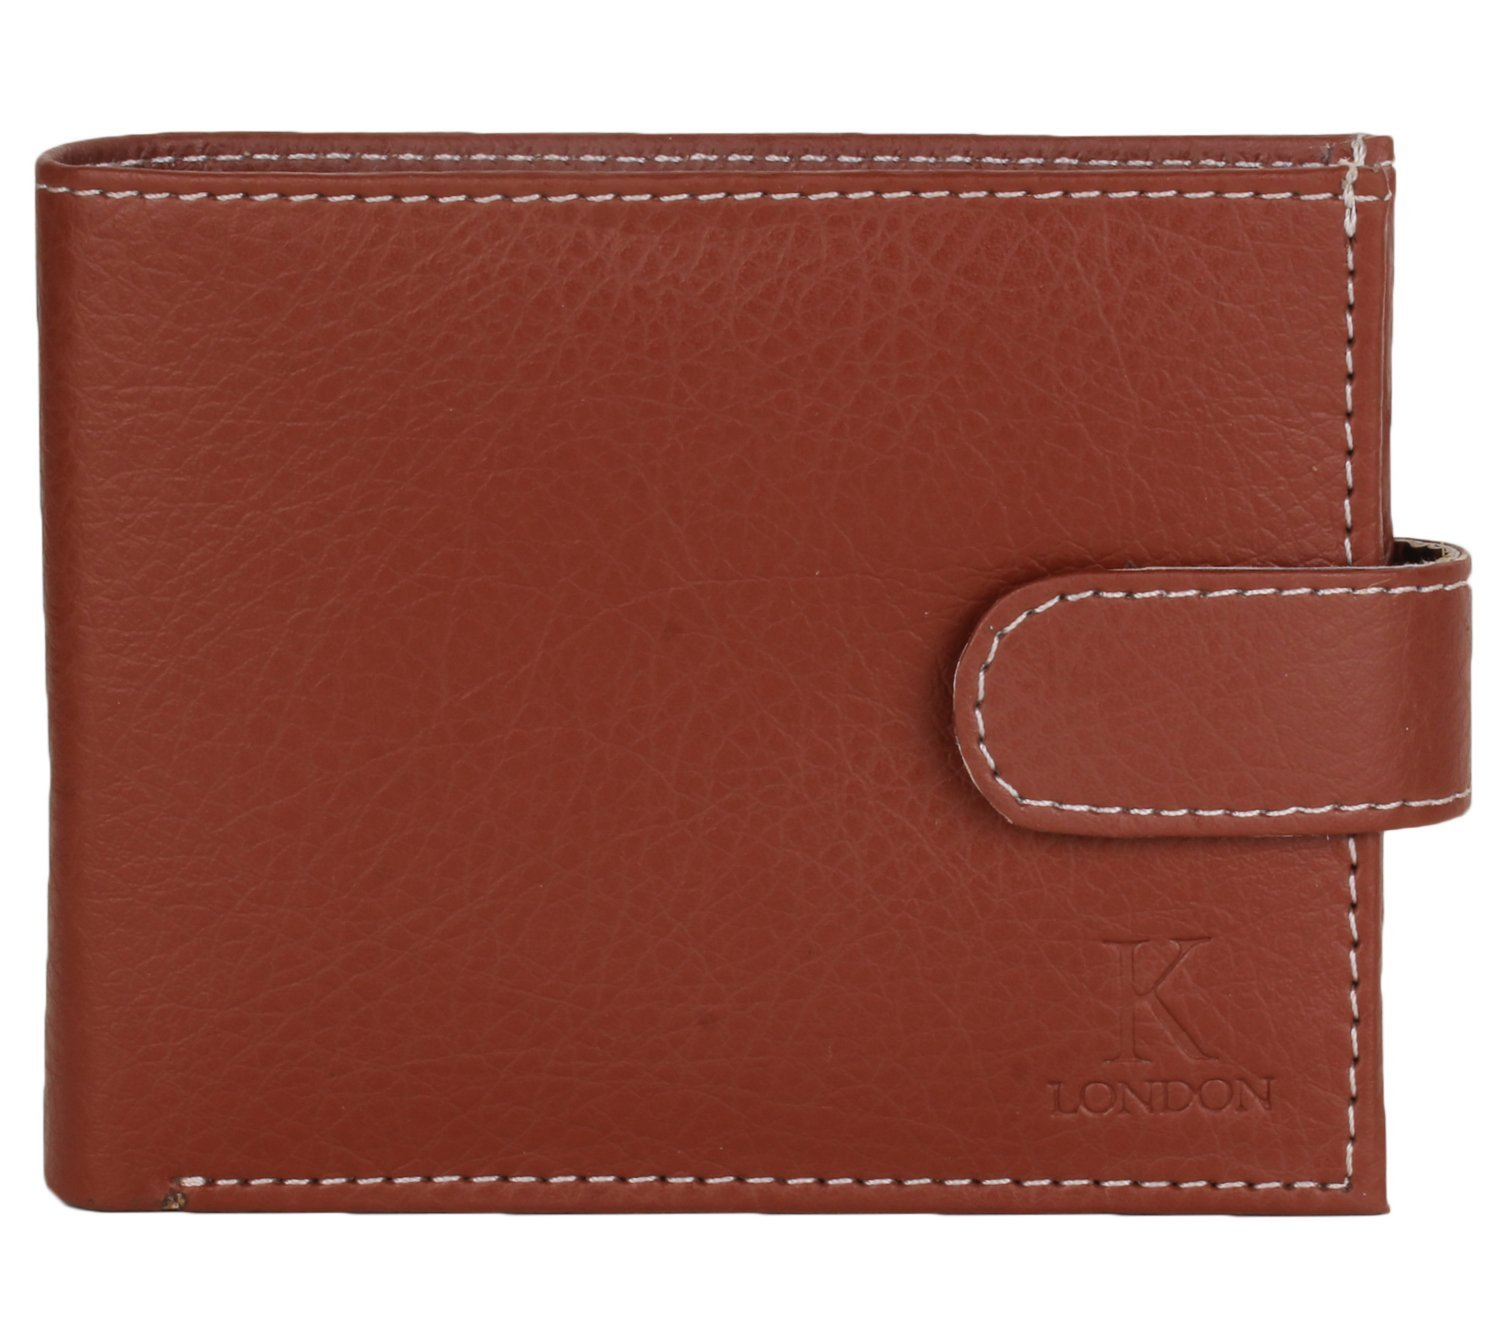 K London Men's Wallets 50% Off or More from Rs 99